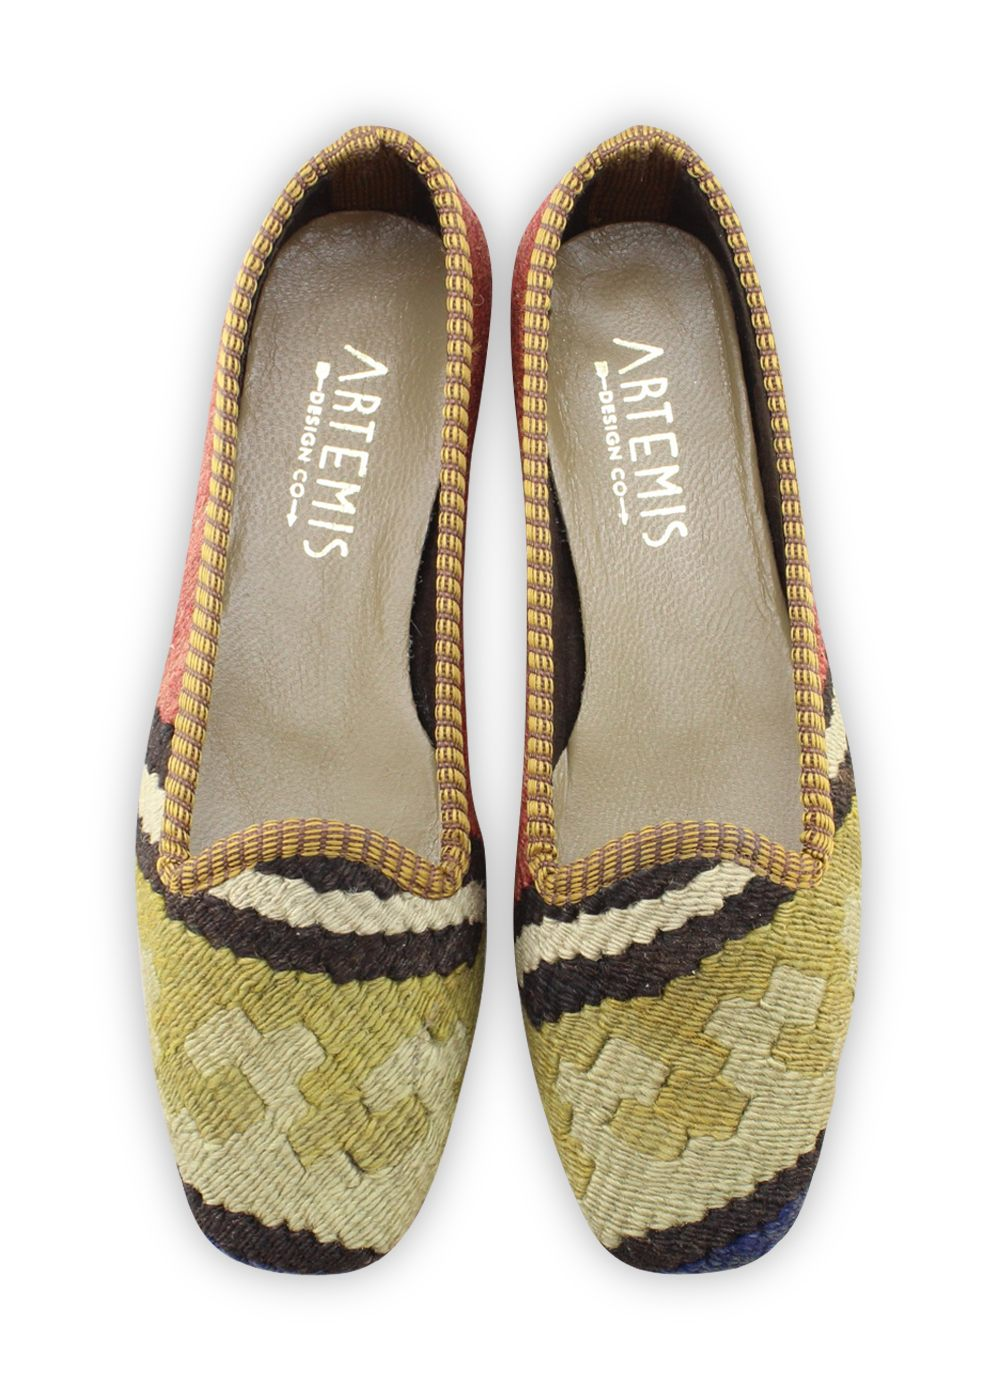 Women's Shoes - Women's Kilim Loafers - Size 36